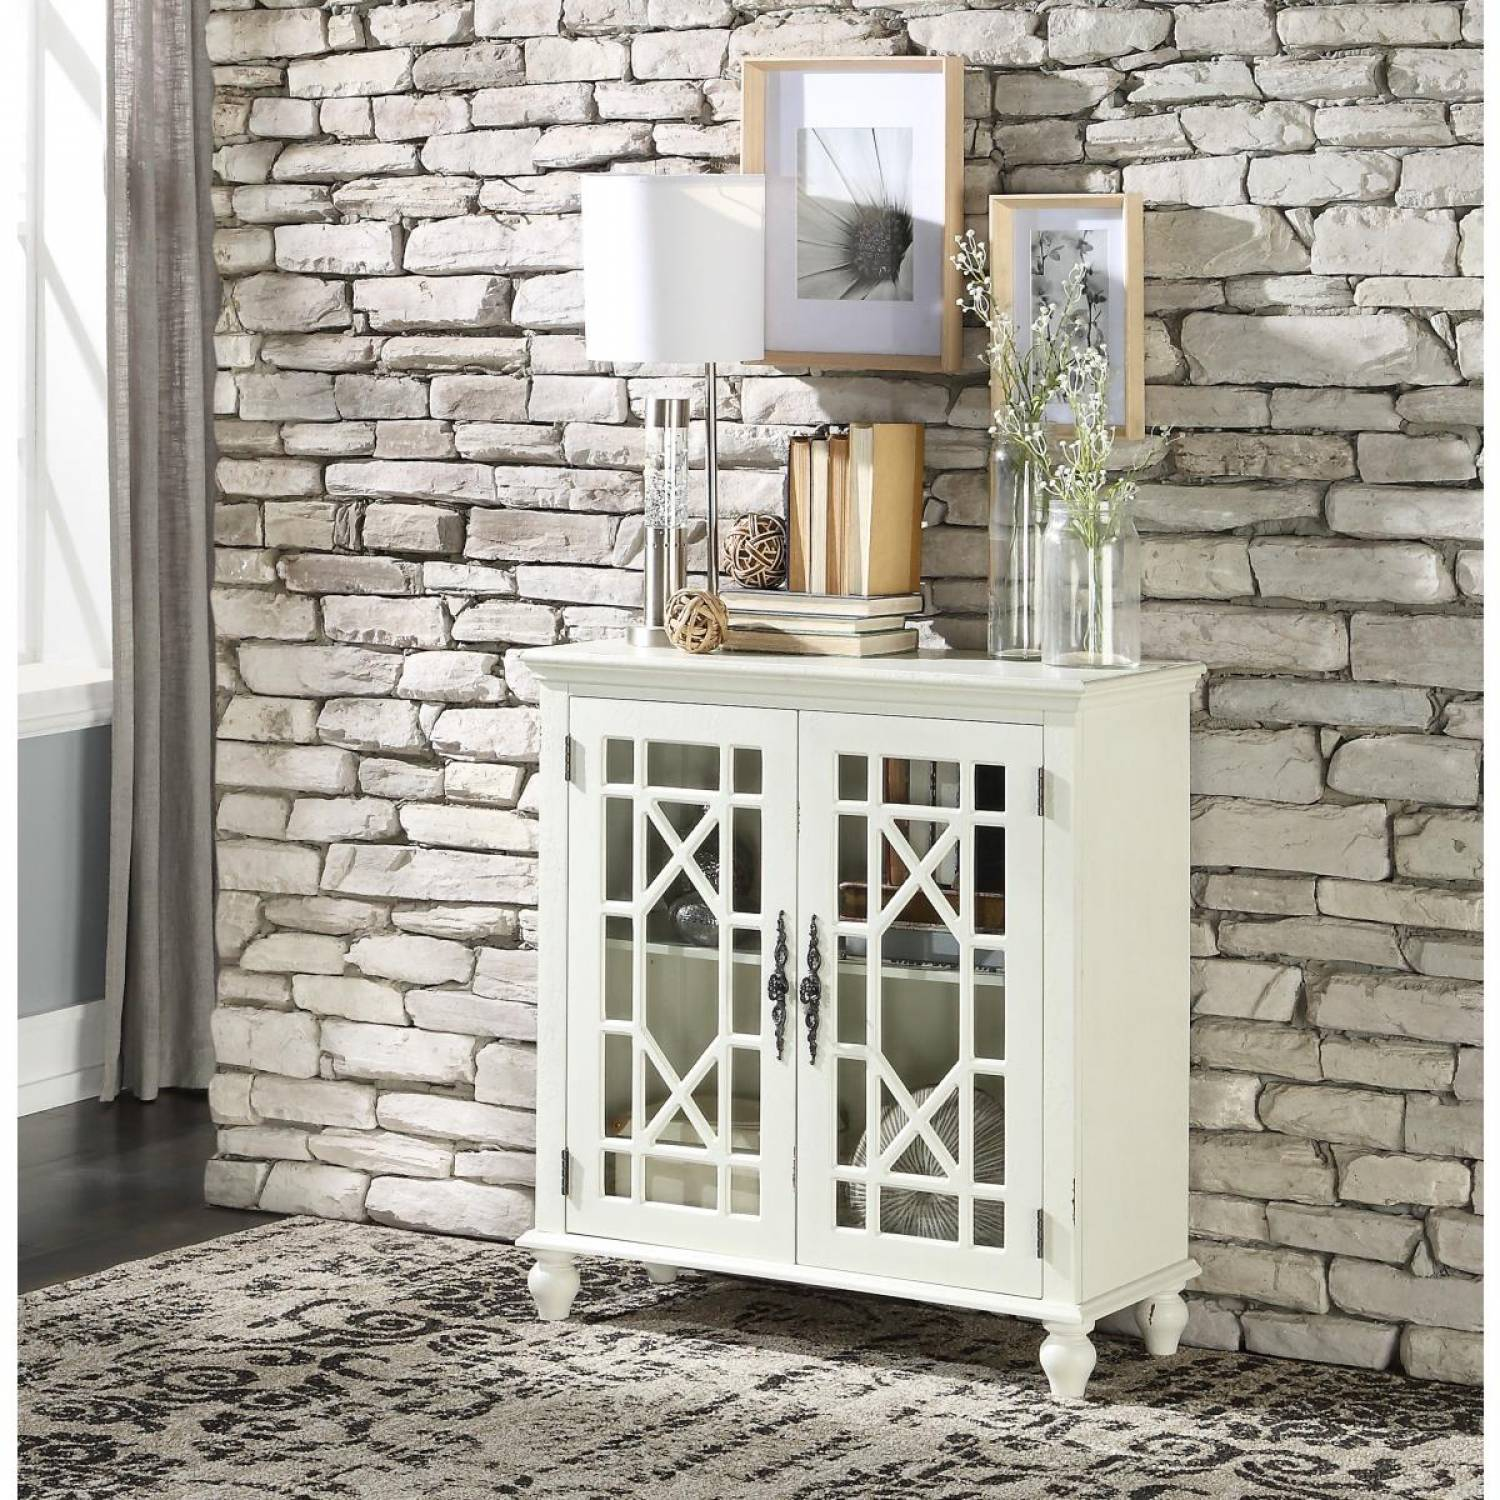 1002a70wh Accent Chest Antique White 3a